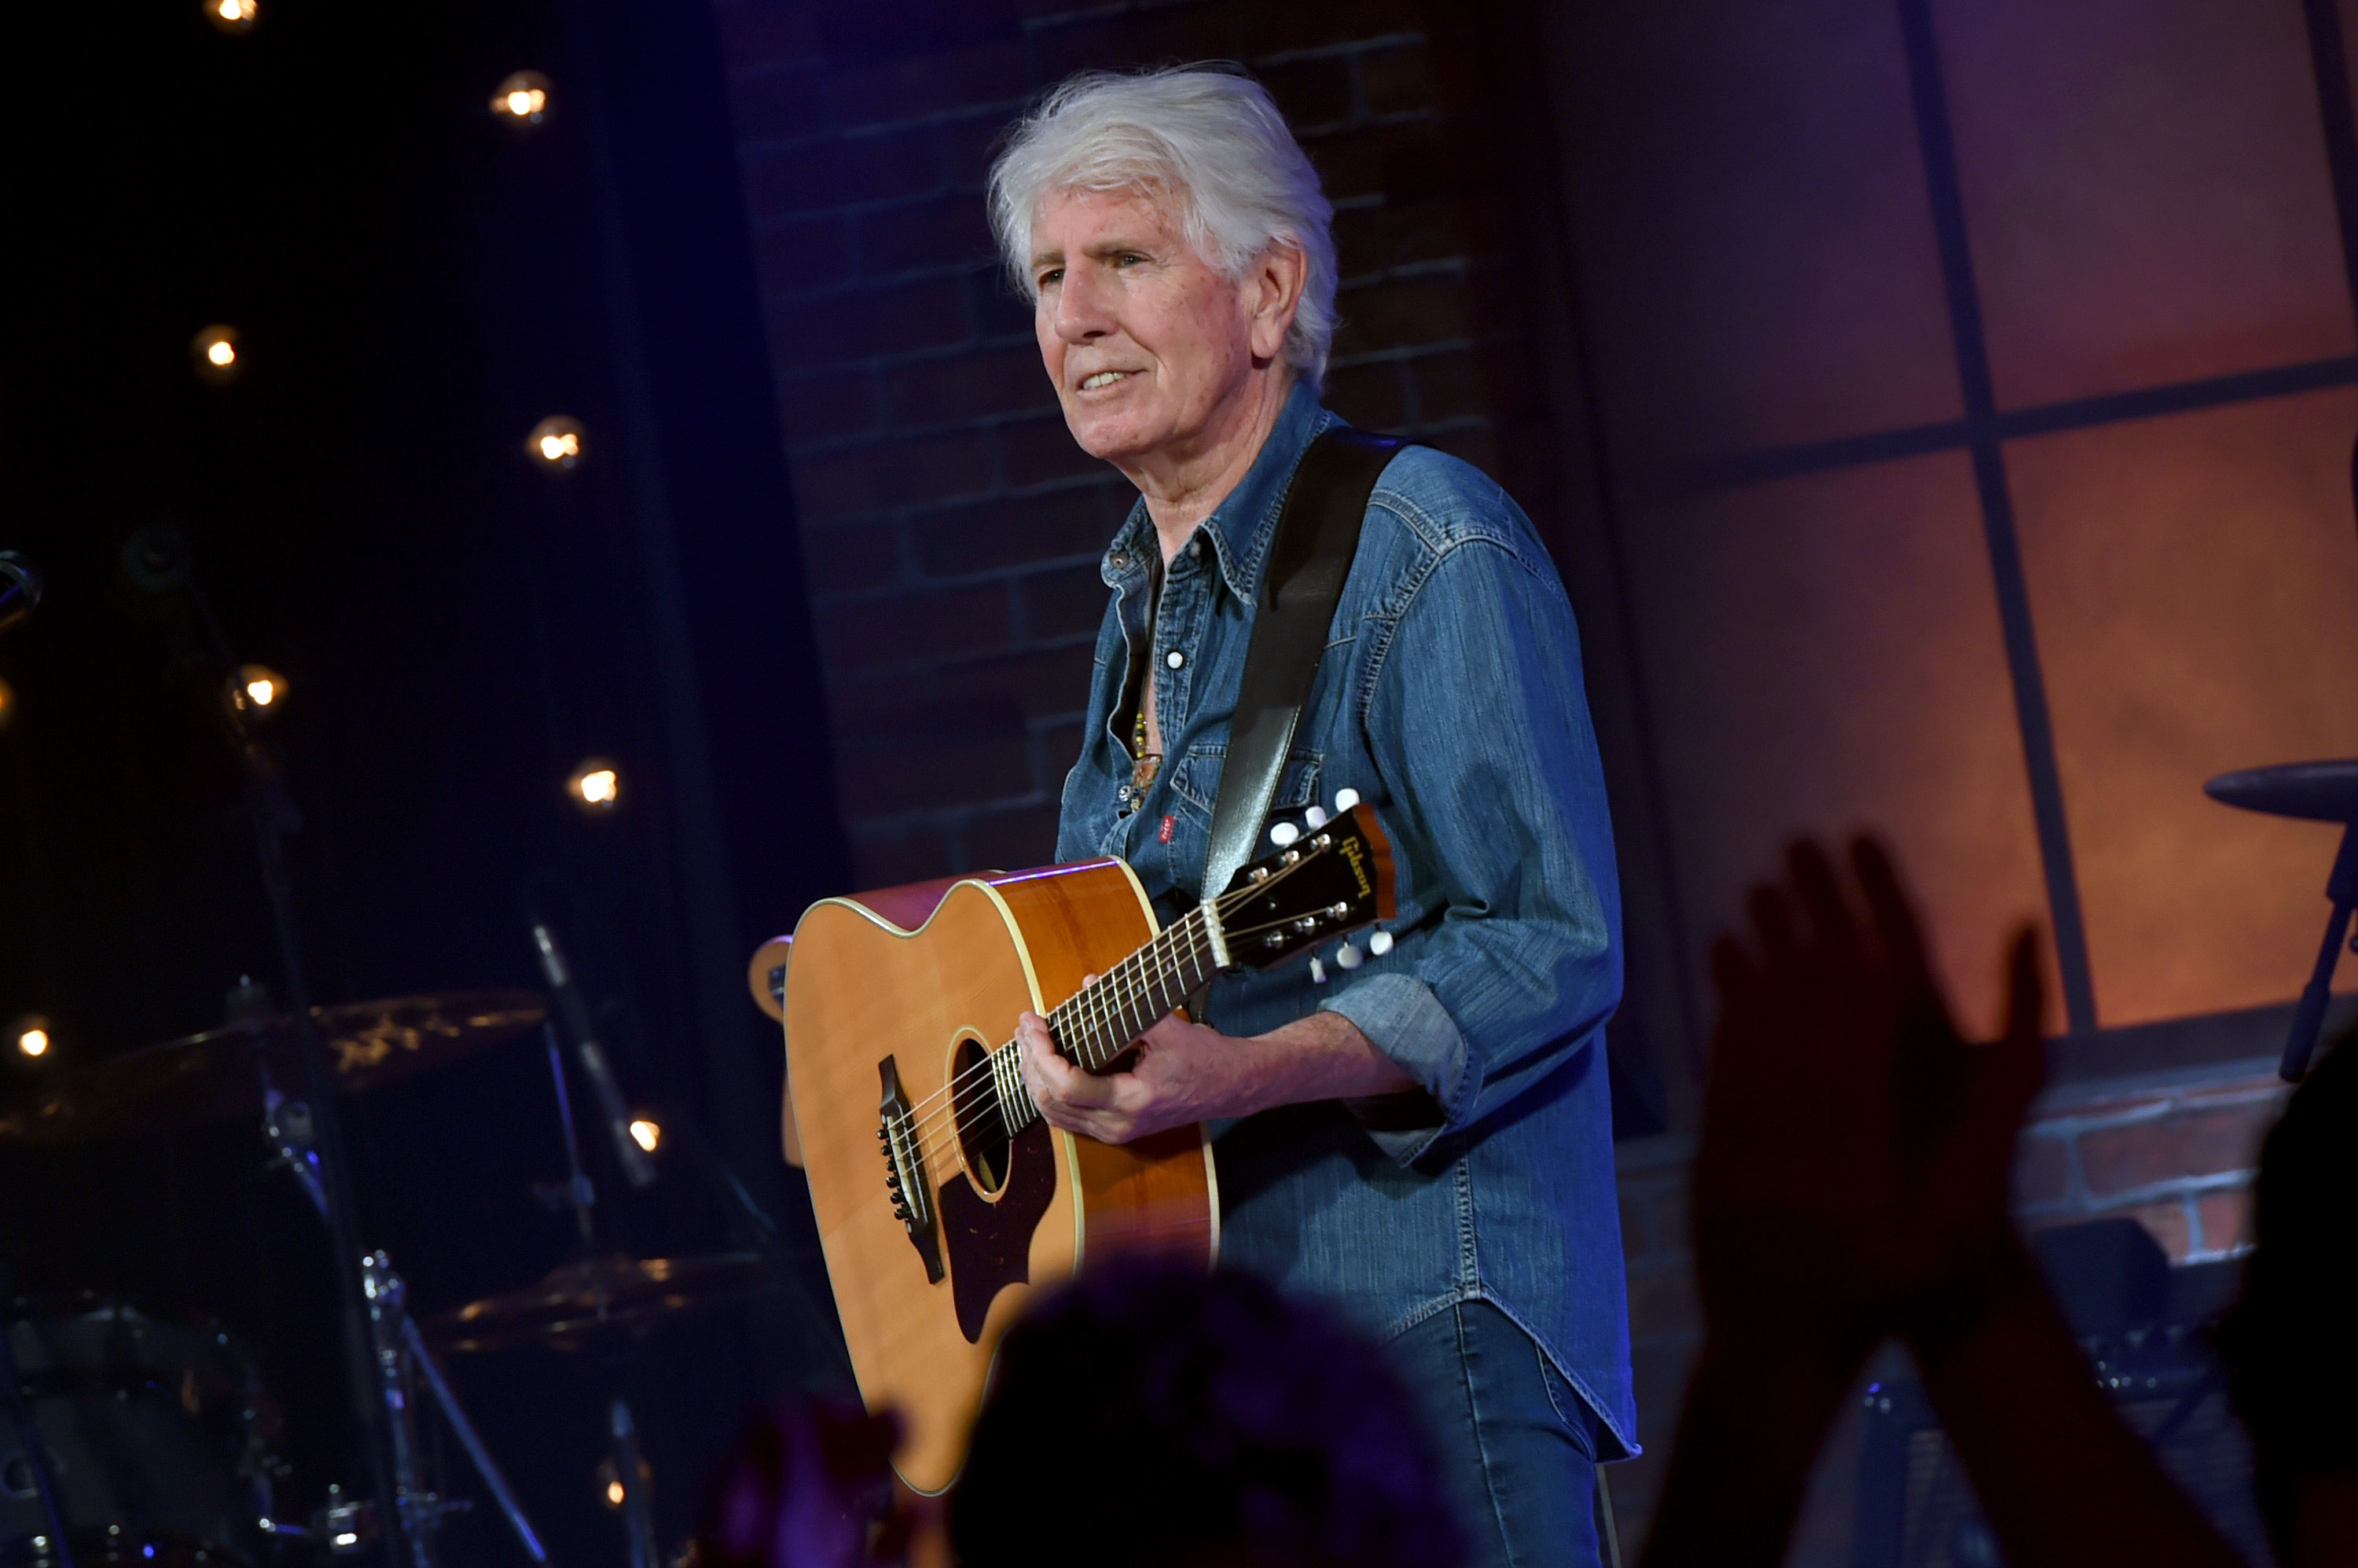 Watch Graham Nash Honor 1968, 2018 Protests With New 'Teach Your Children' Video